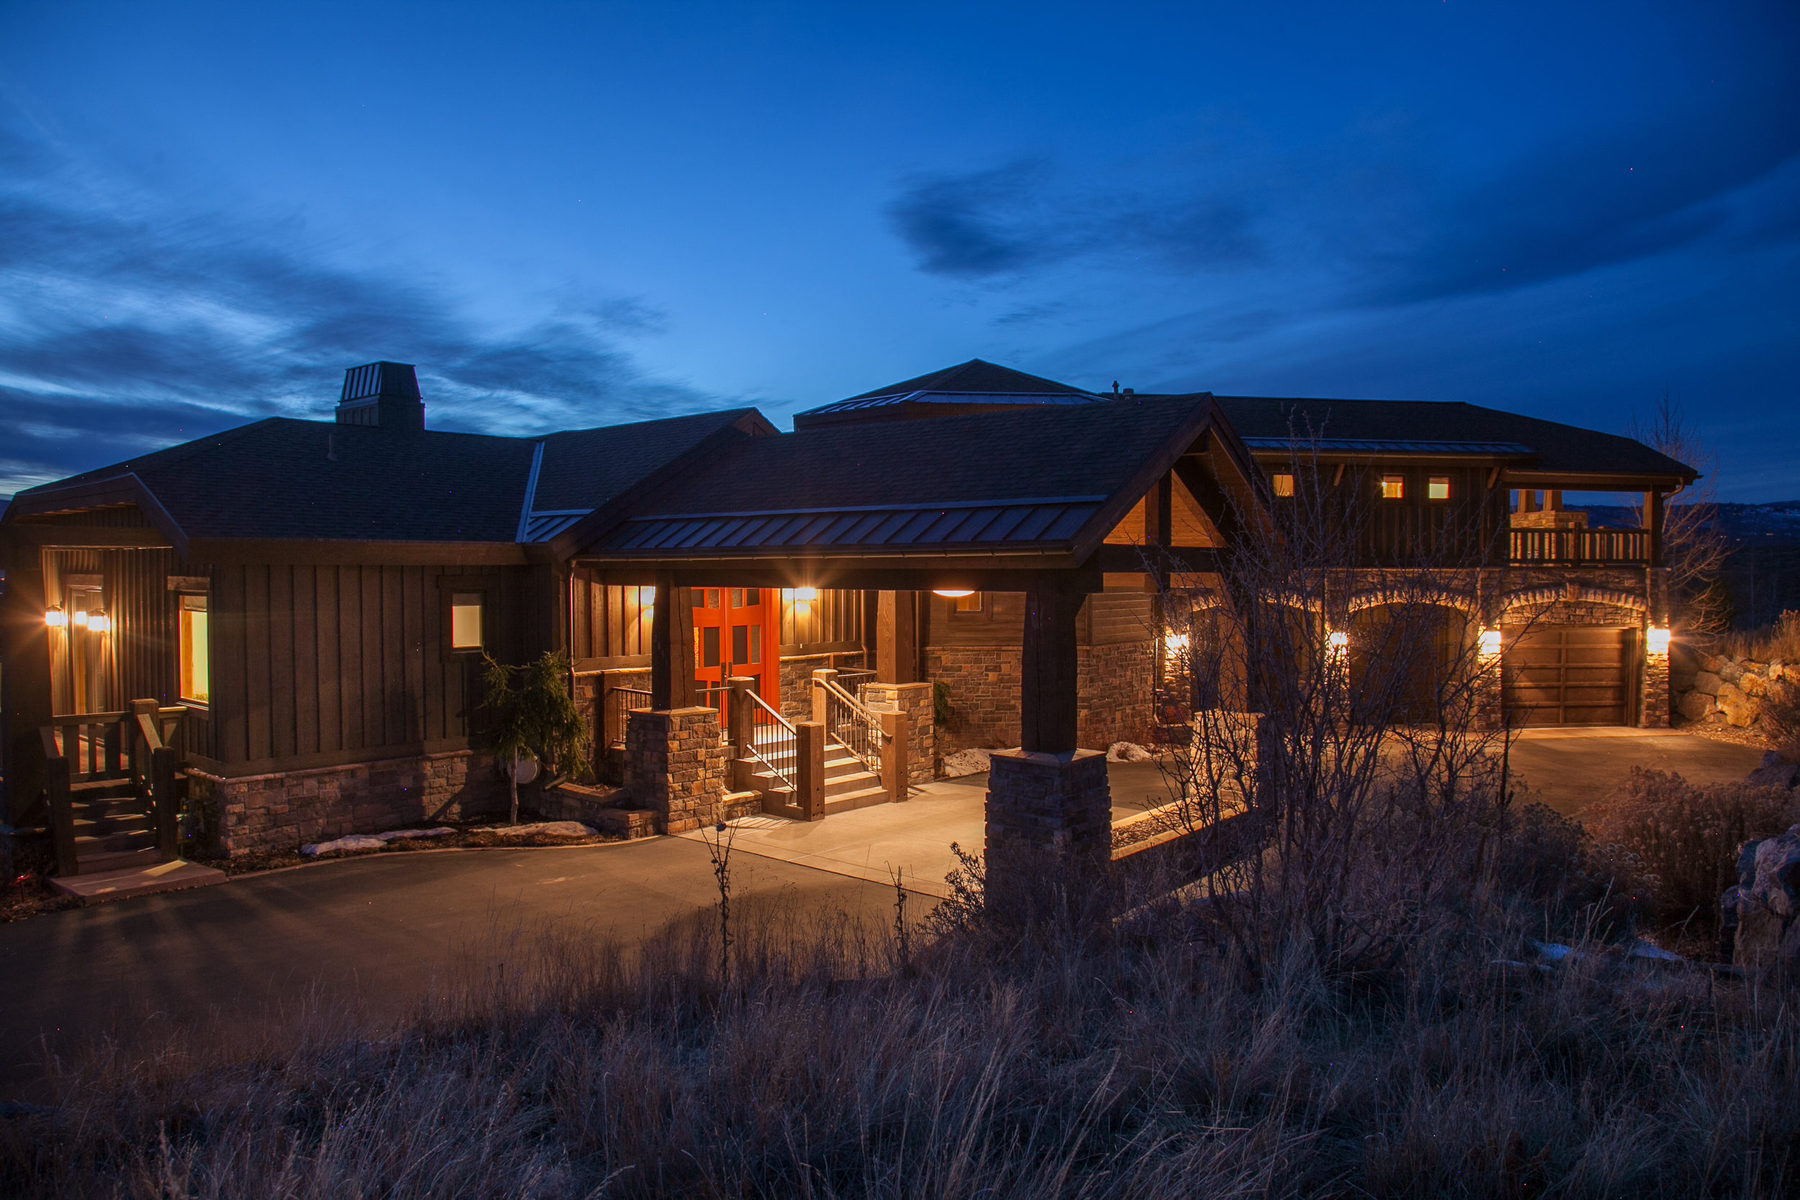 Nhà ở một gia đình vì Bán tại Fully Furnished Quality Promontory Home Offering Commanding Views of Park City 2891 E Westview Trail Park City, Utah 84098 Hoa Kỳ